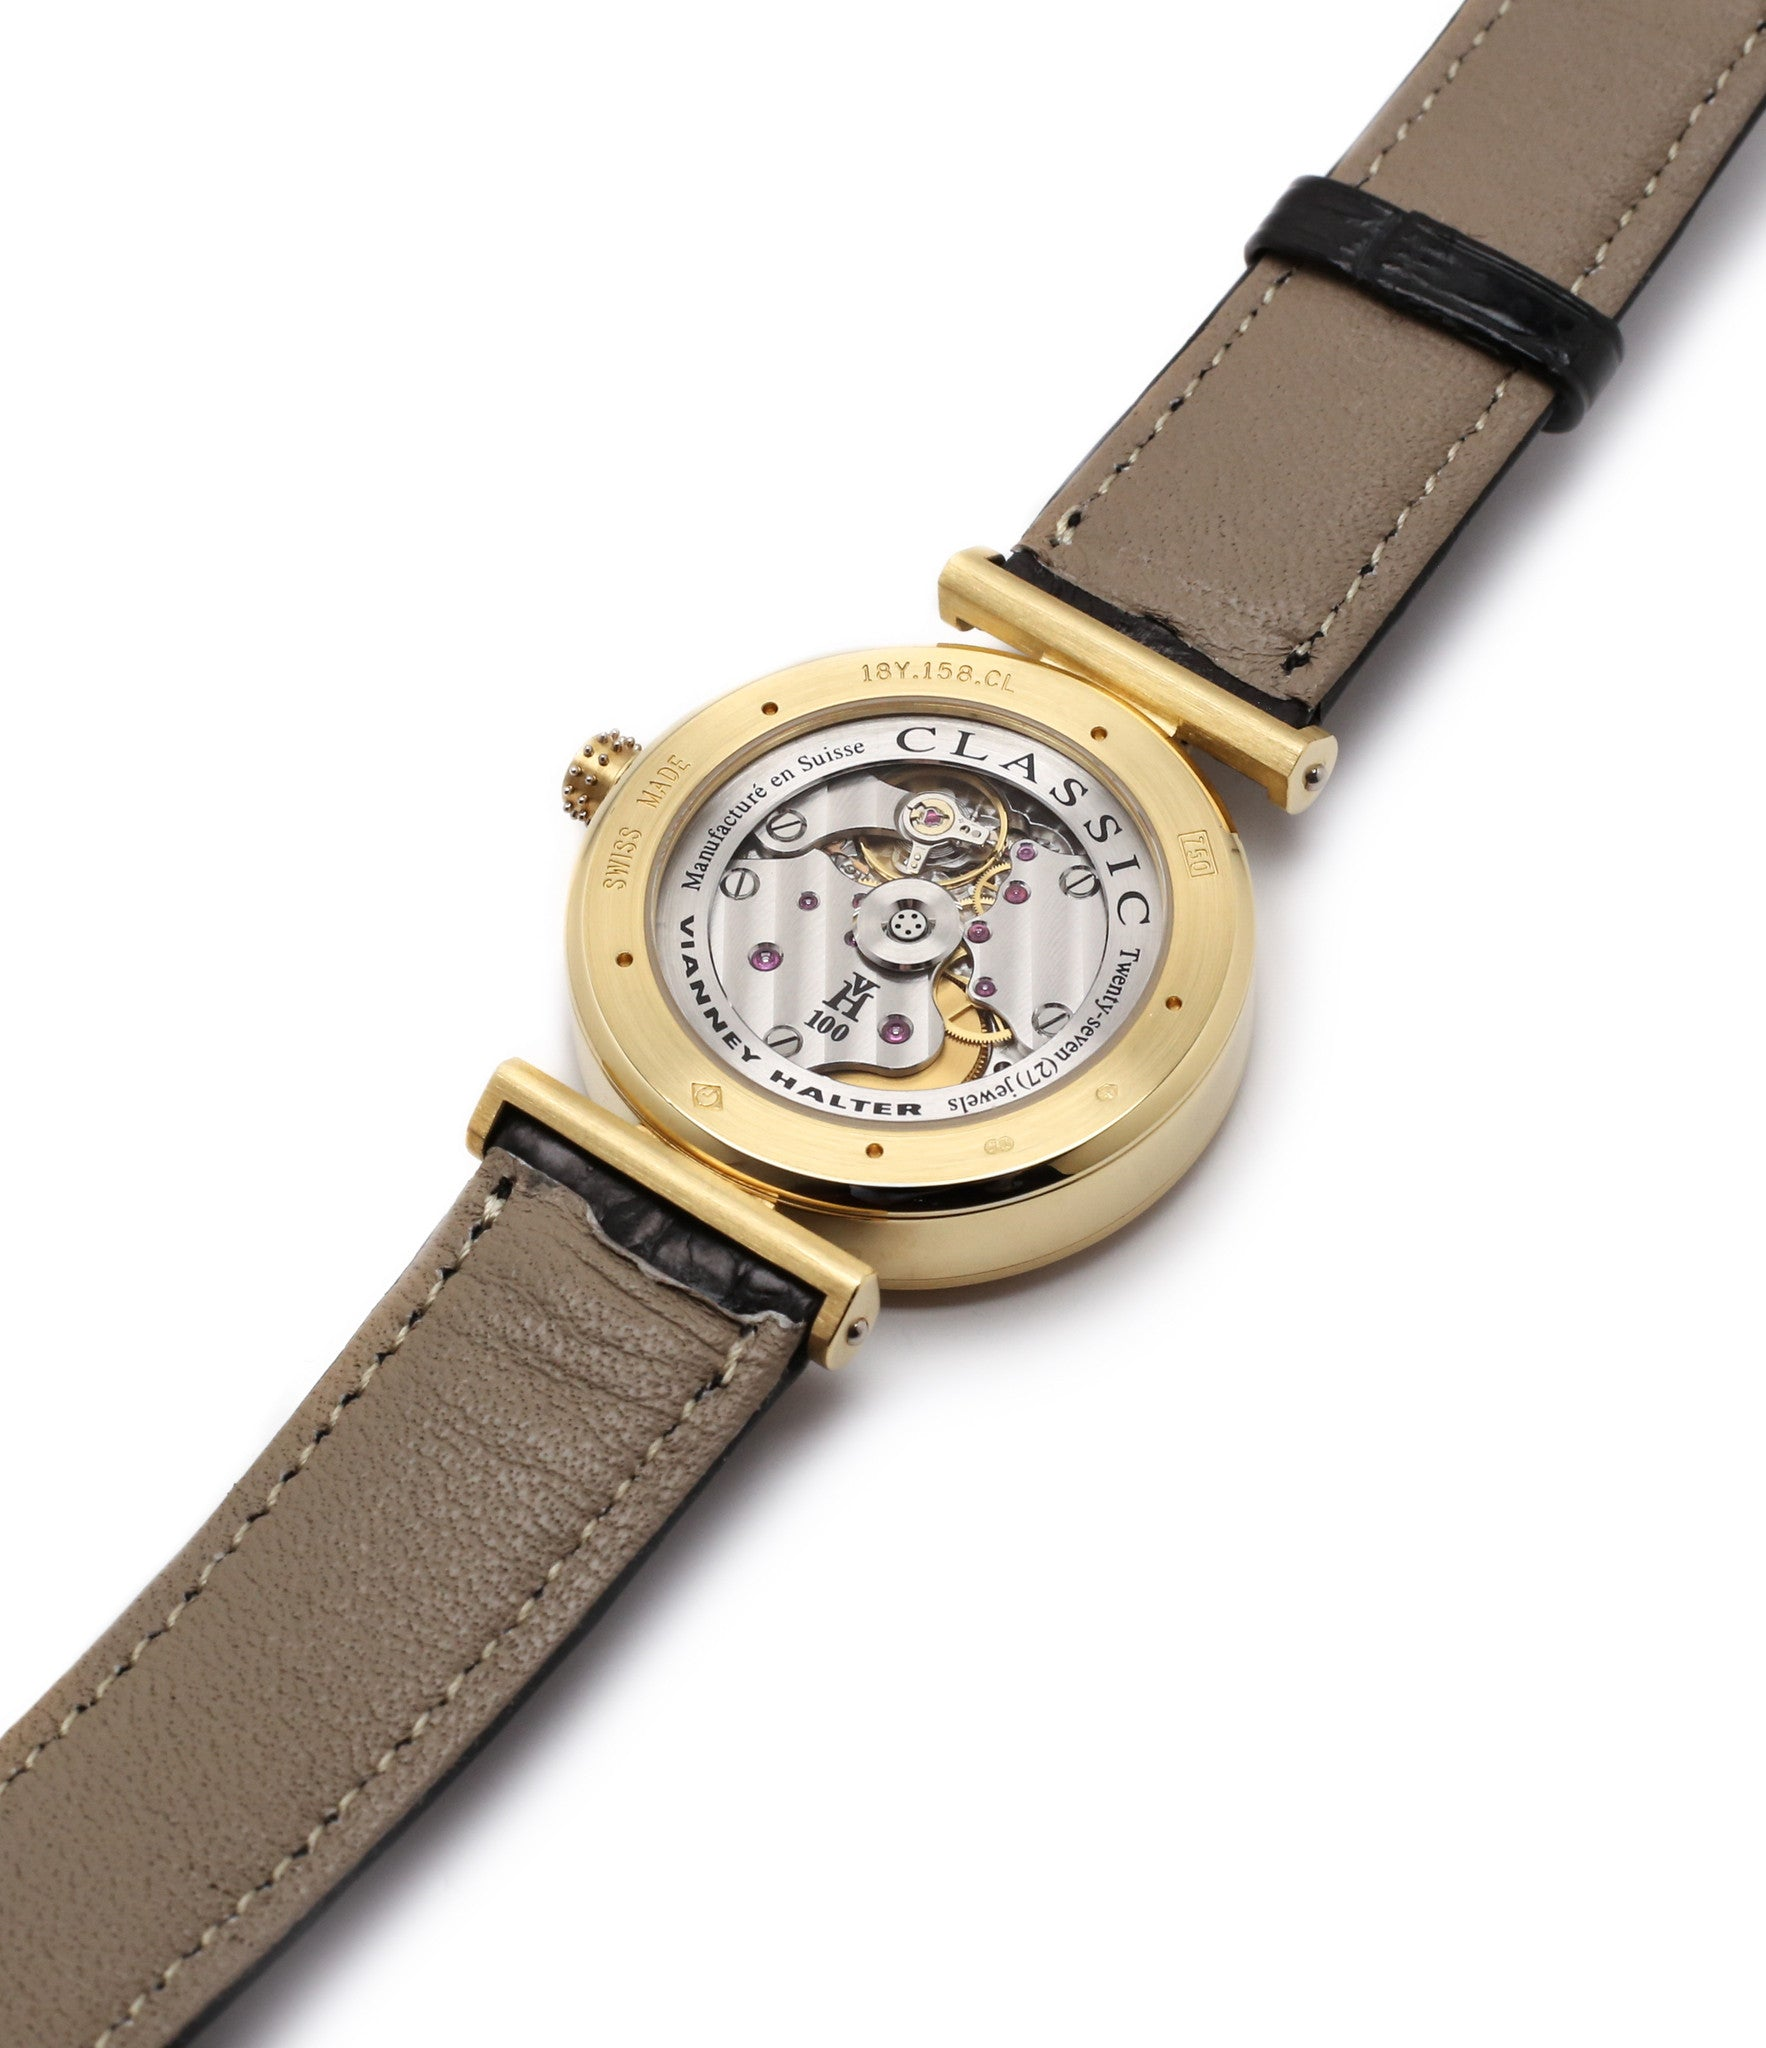 display back movement buy Vianney Halter Classic yellow gold time-only dress watch at A Collected Man the approve seller of independent watchmakers